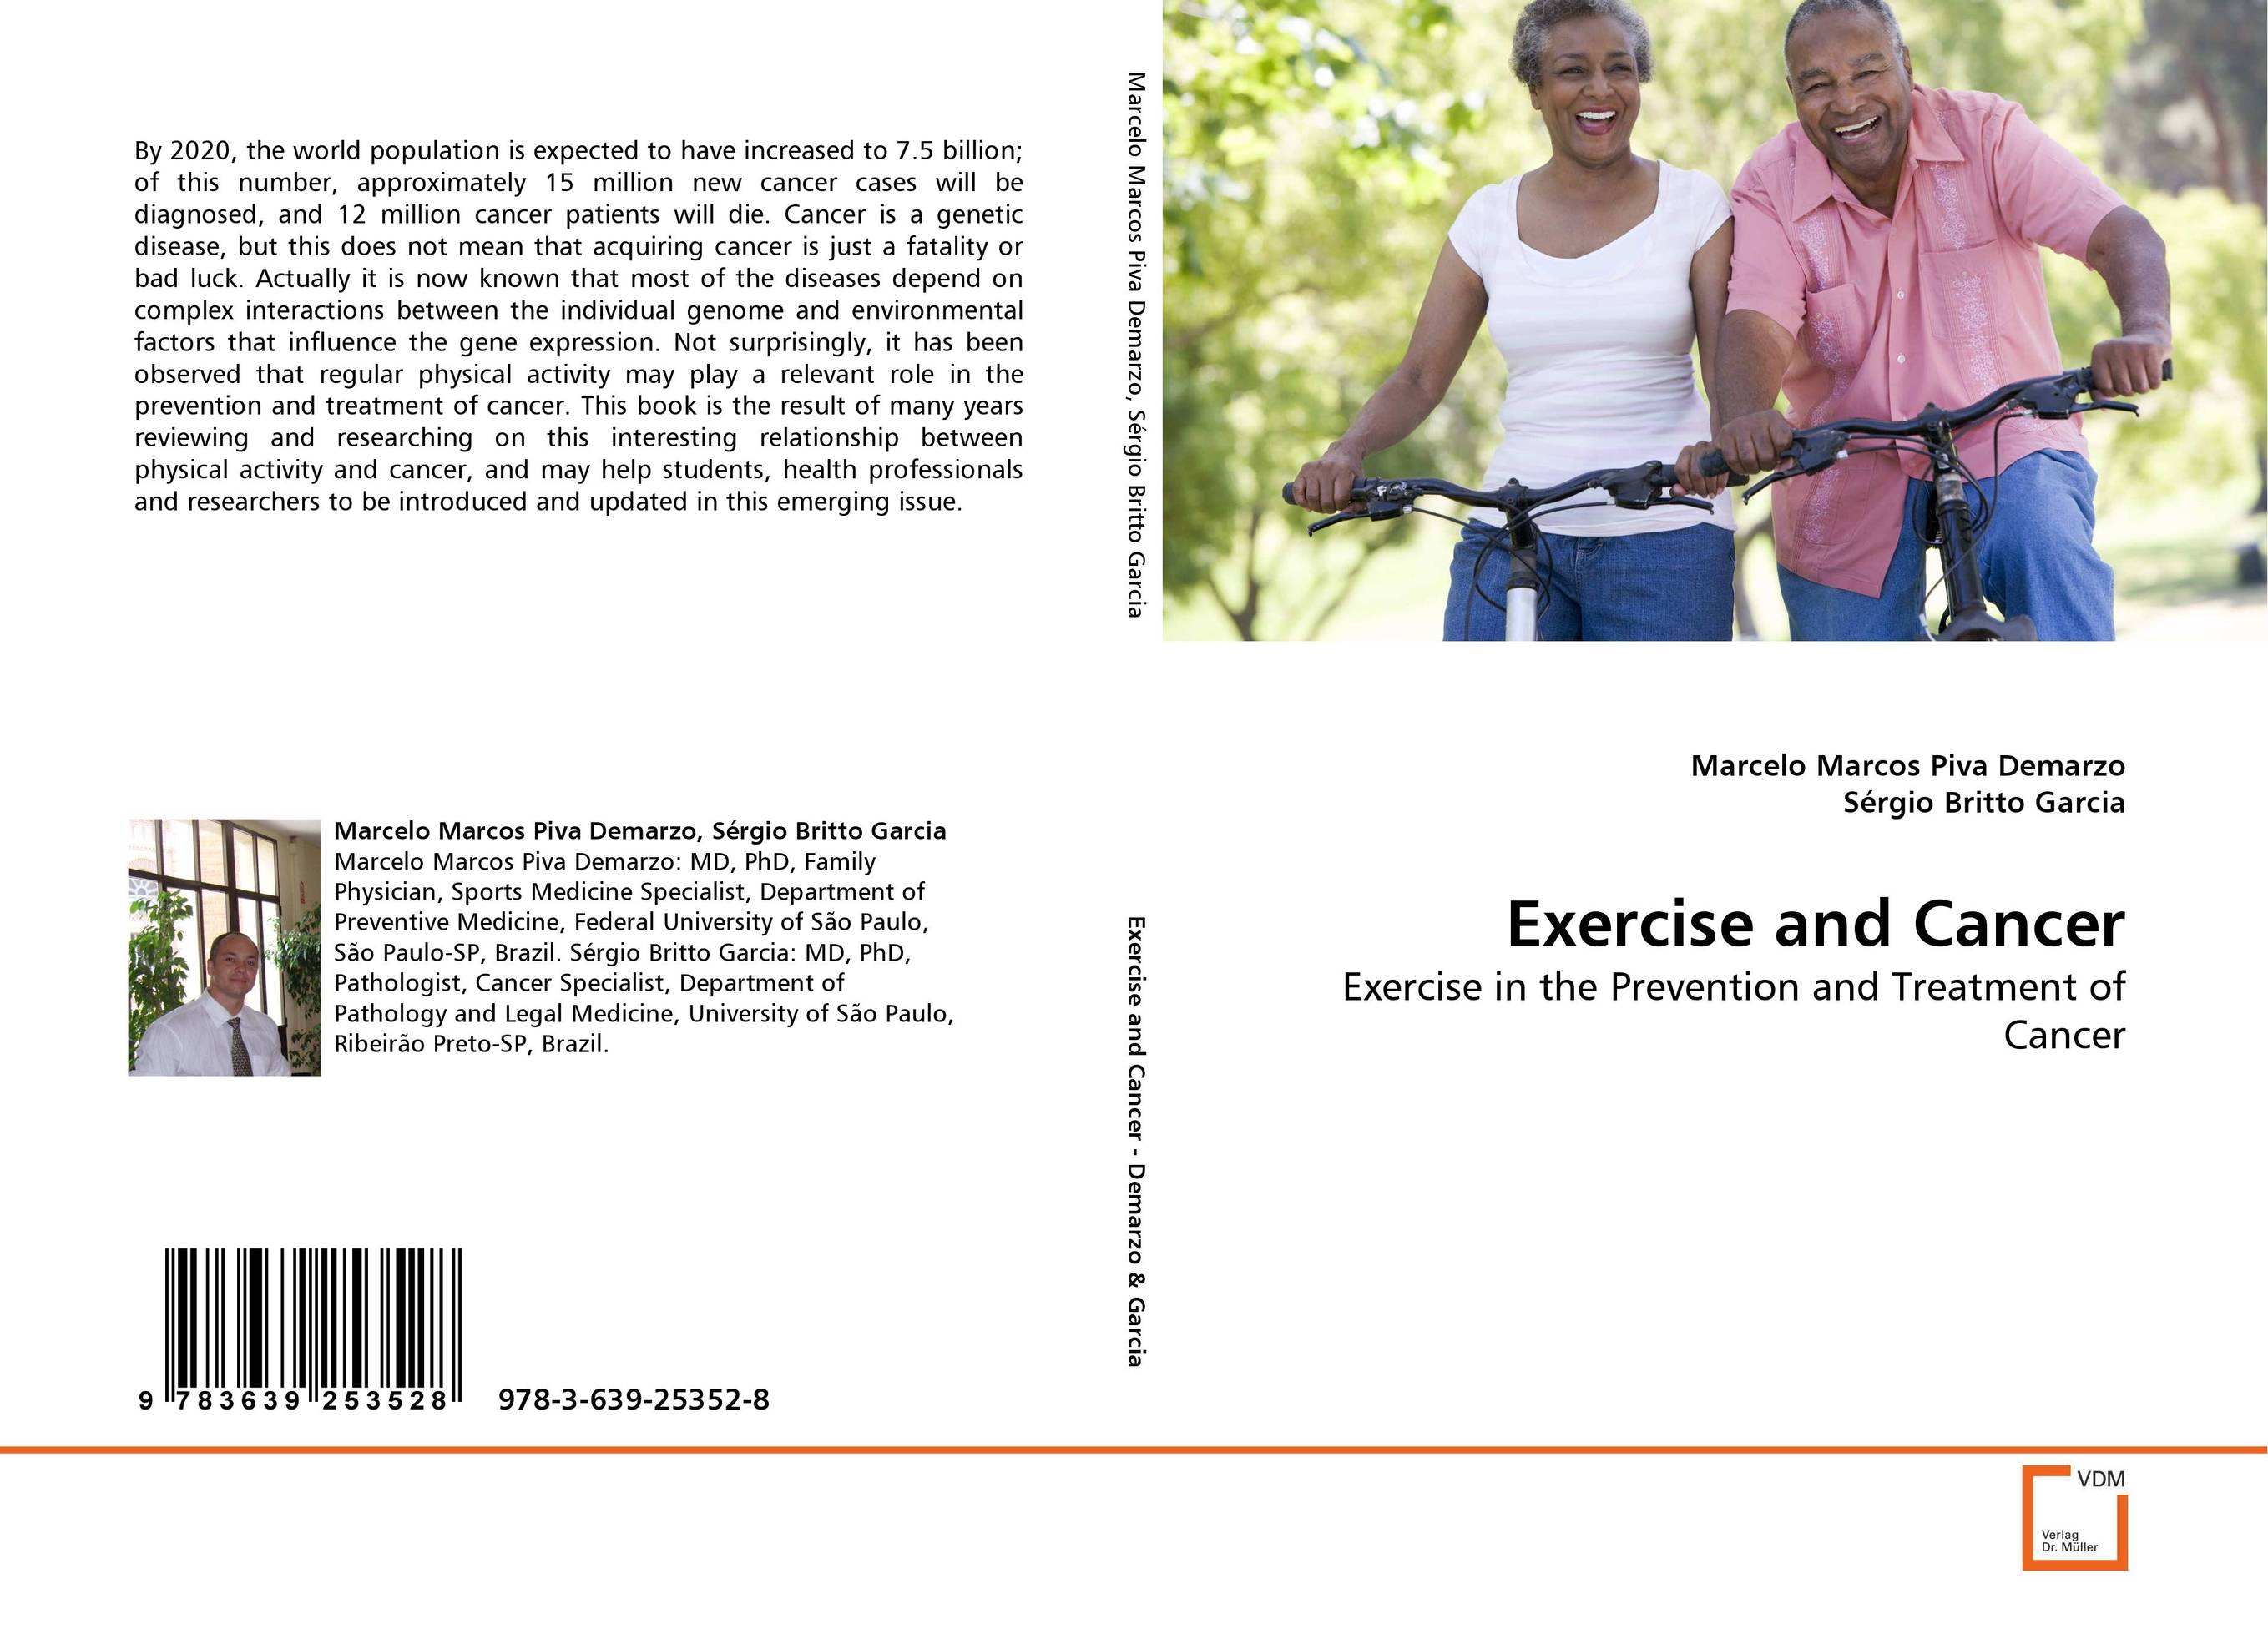 Exercise and Cancer breast cancer what you should know but may not be told about prevention diagnosis and trea tment